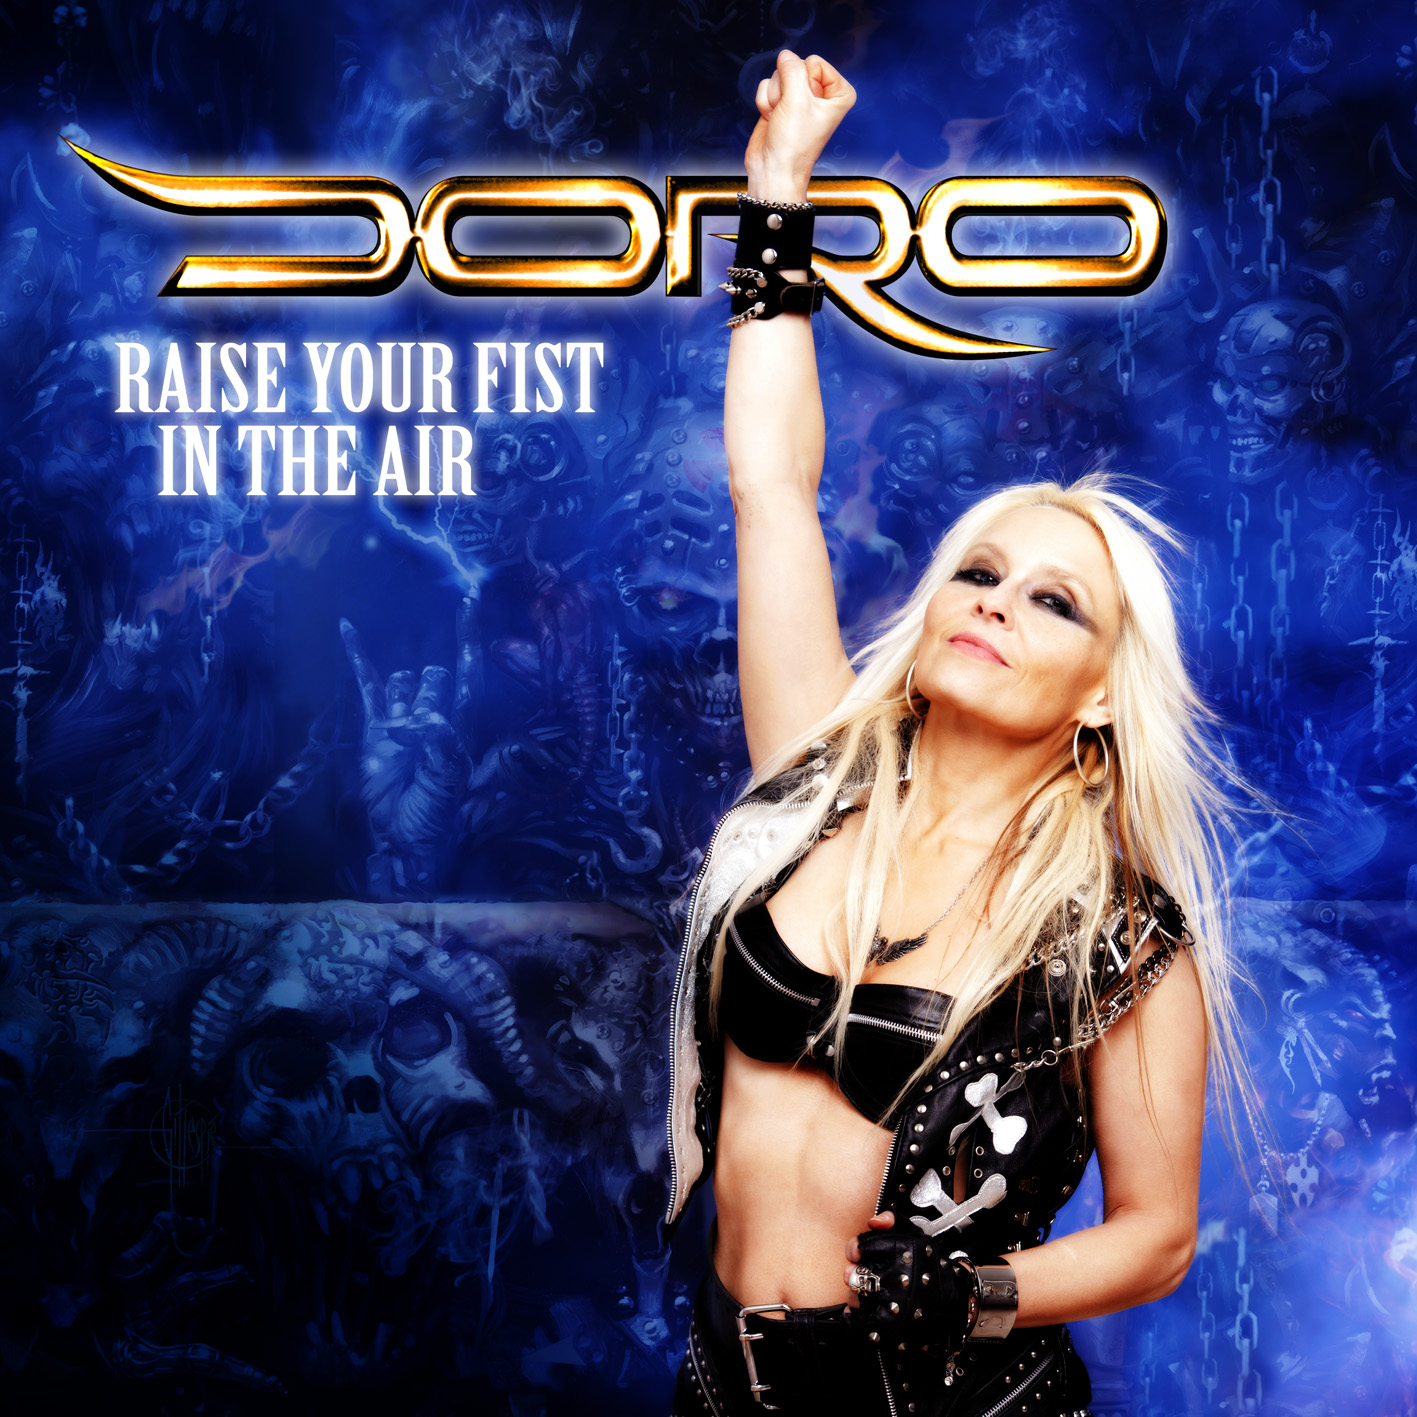 Doro Raise Your Fist In The Air Vinyl Cover